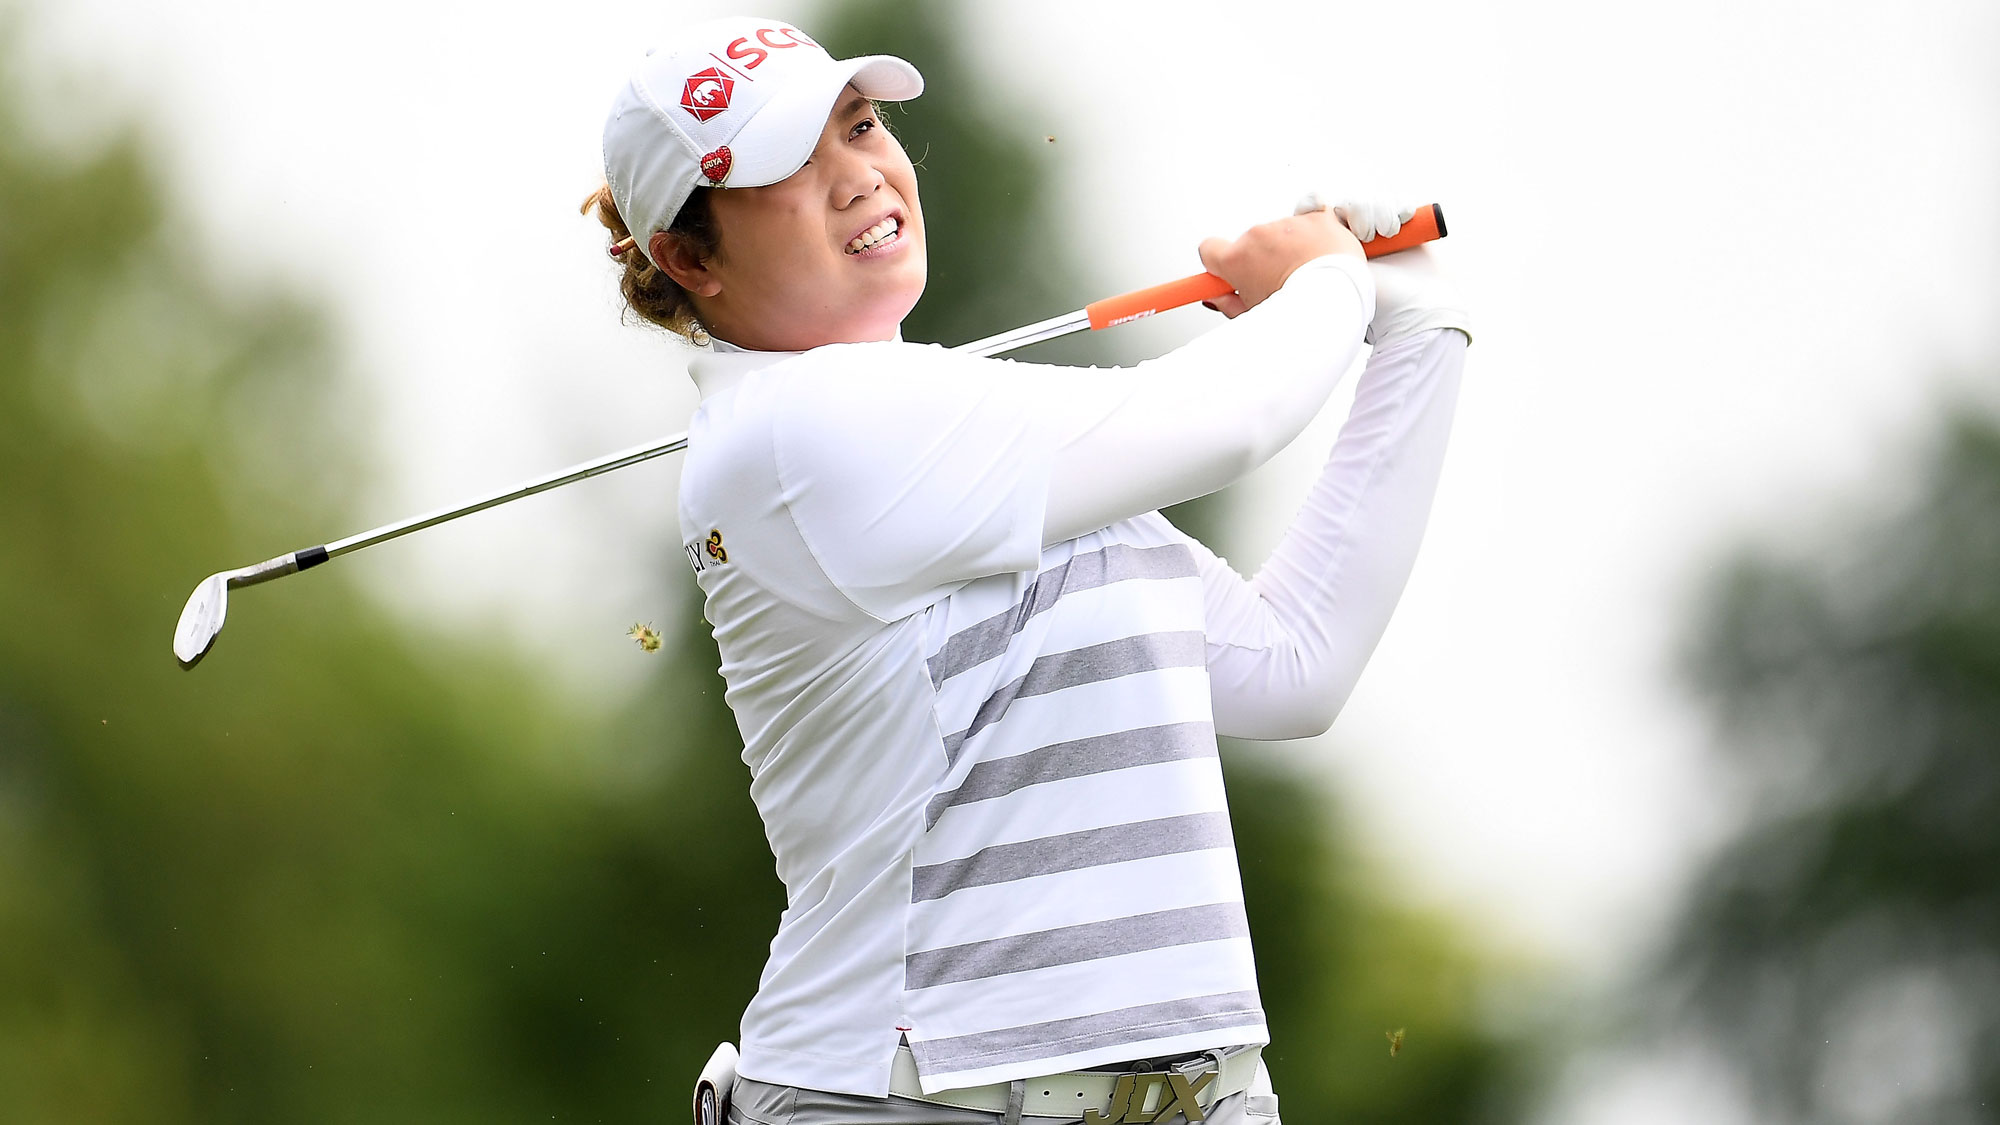 Ariya Jutanugarn Experienced Back Pain on Friday in Grand Rapids